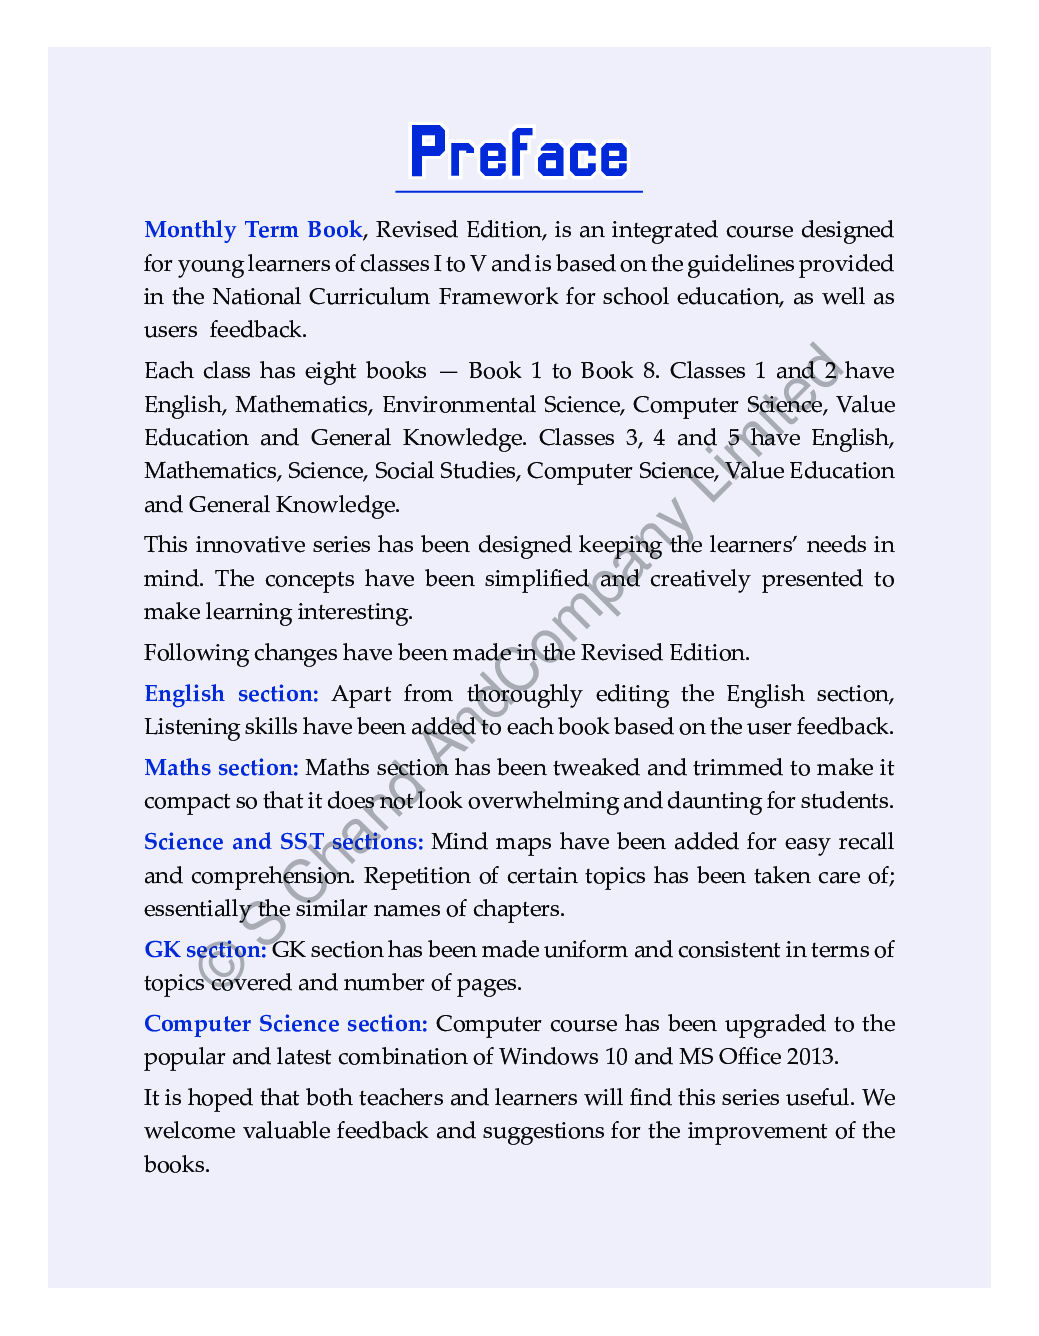 Monthly Term Book Grade 2 Term 4 - Page 4